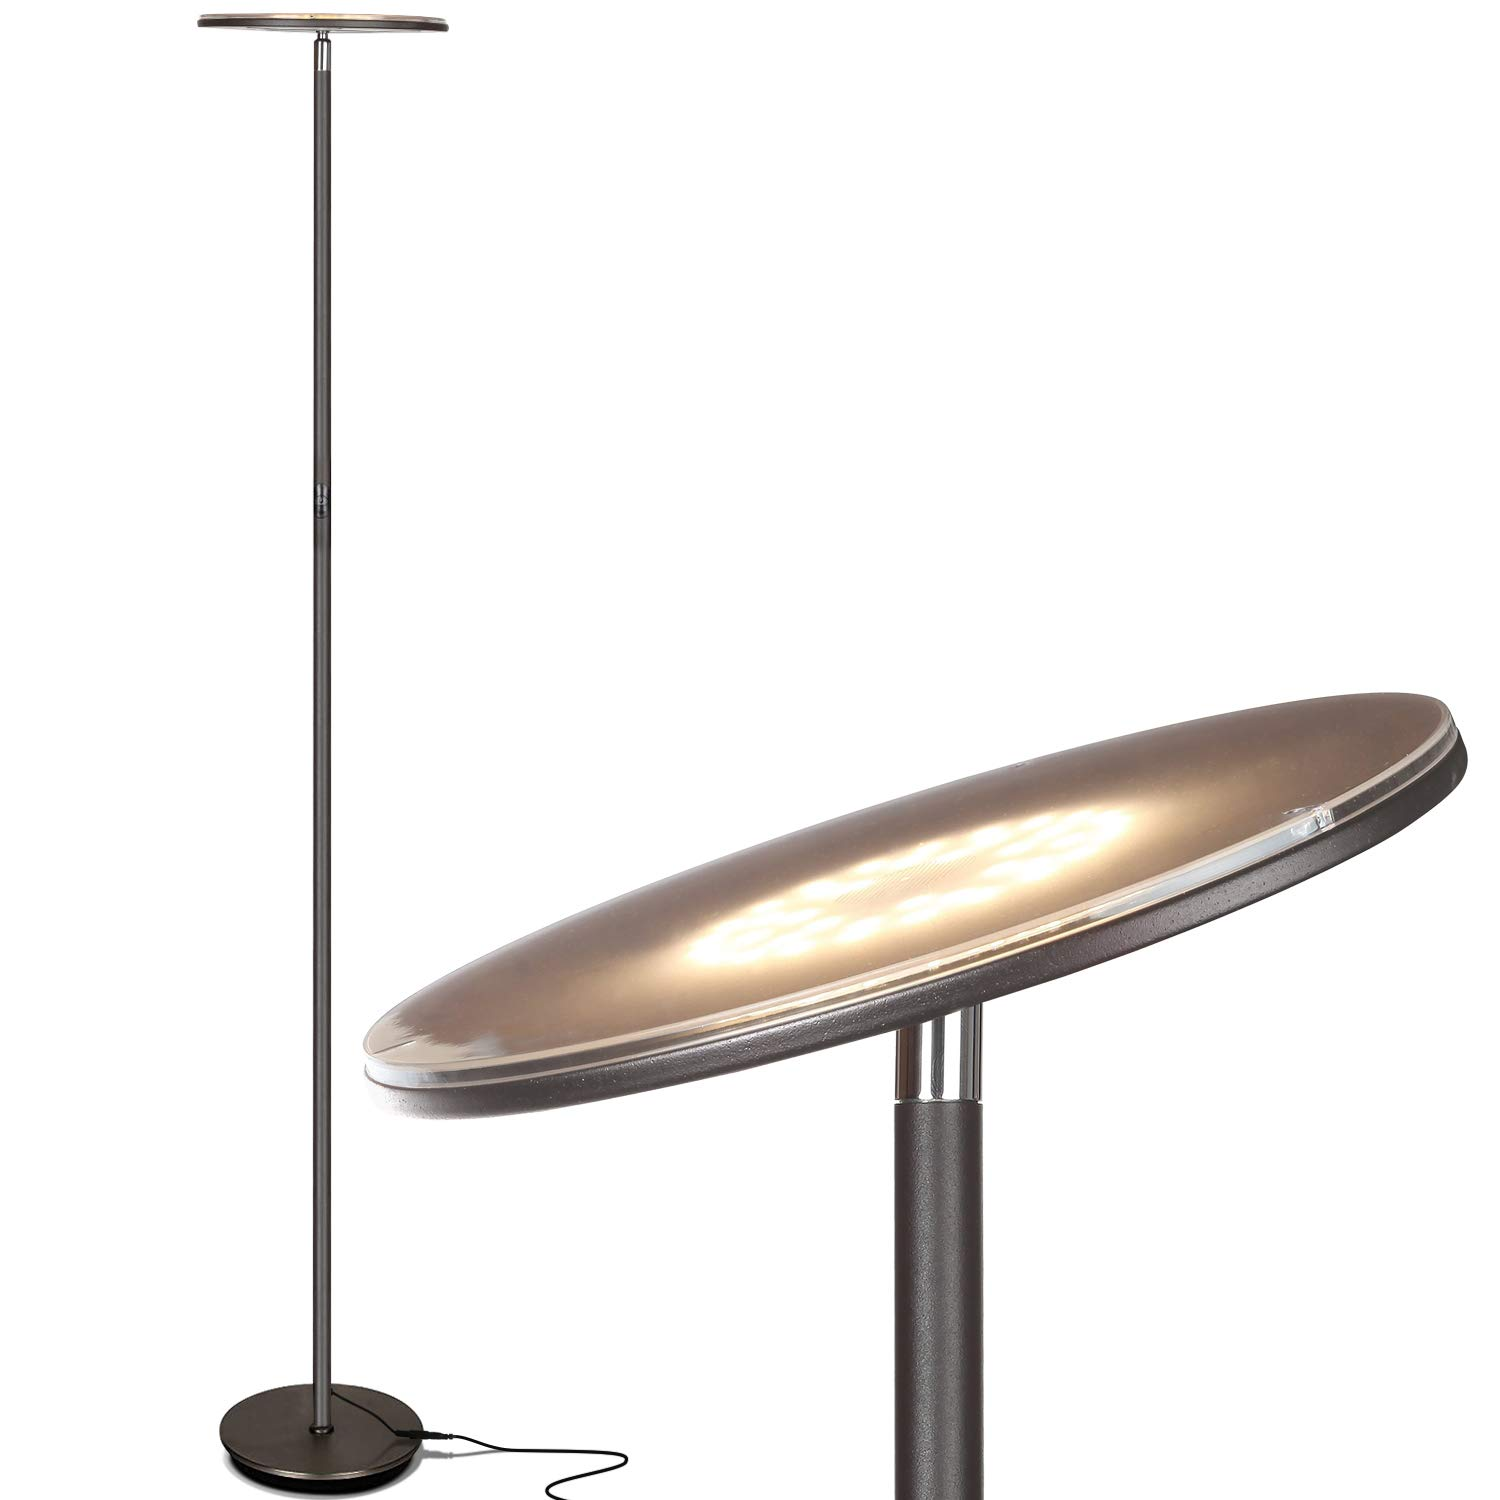 Top 10 Best Halogen Floor Lamp Reviews in 2021 4